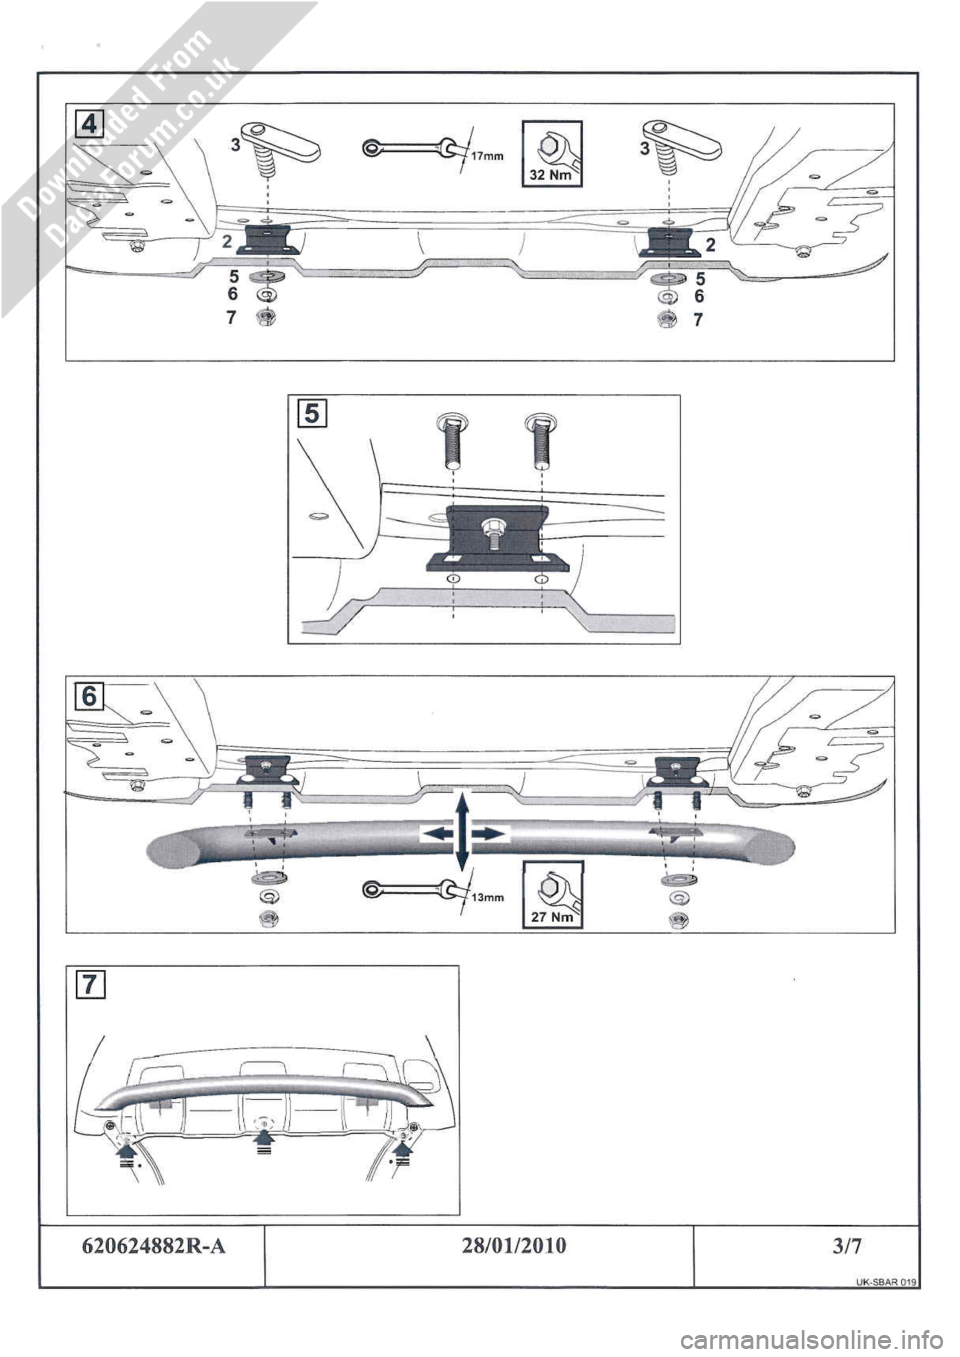 DACIA DUSTER 2010 1.G Front Styling Bar Fitting Guide Workshop Manual, Page 3